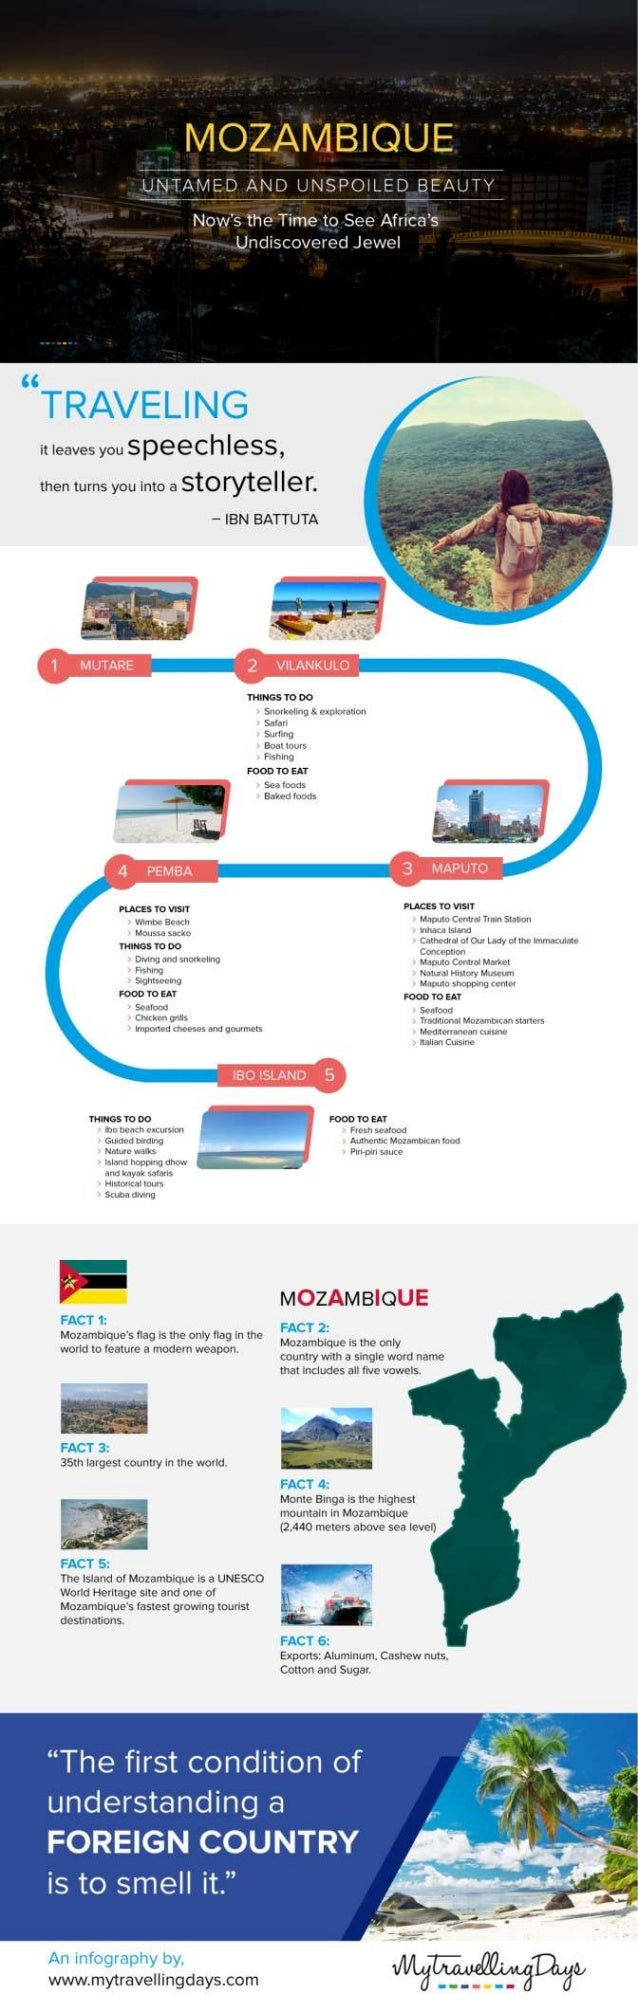 Mozambique Travel Experience and Tips